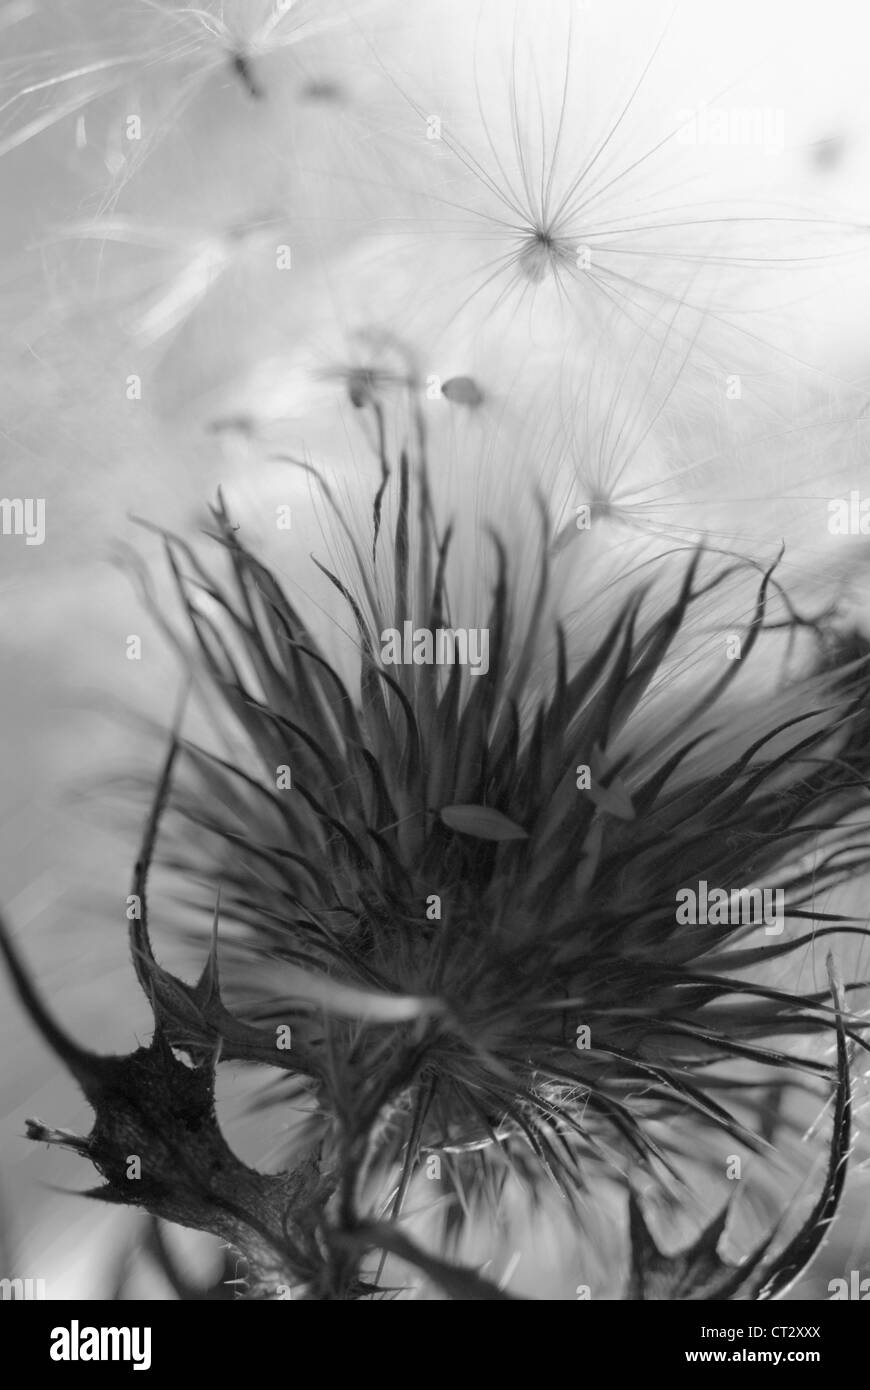 Cirsium vulgare, Thistle, Spear thistle, Scotch thistle, Bull thistle Stock Photo